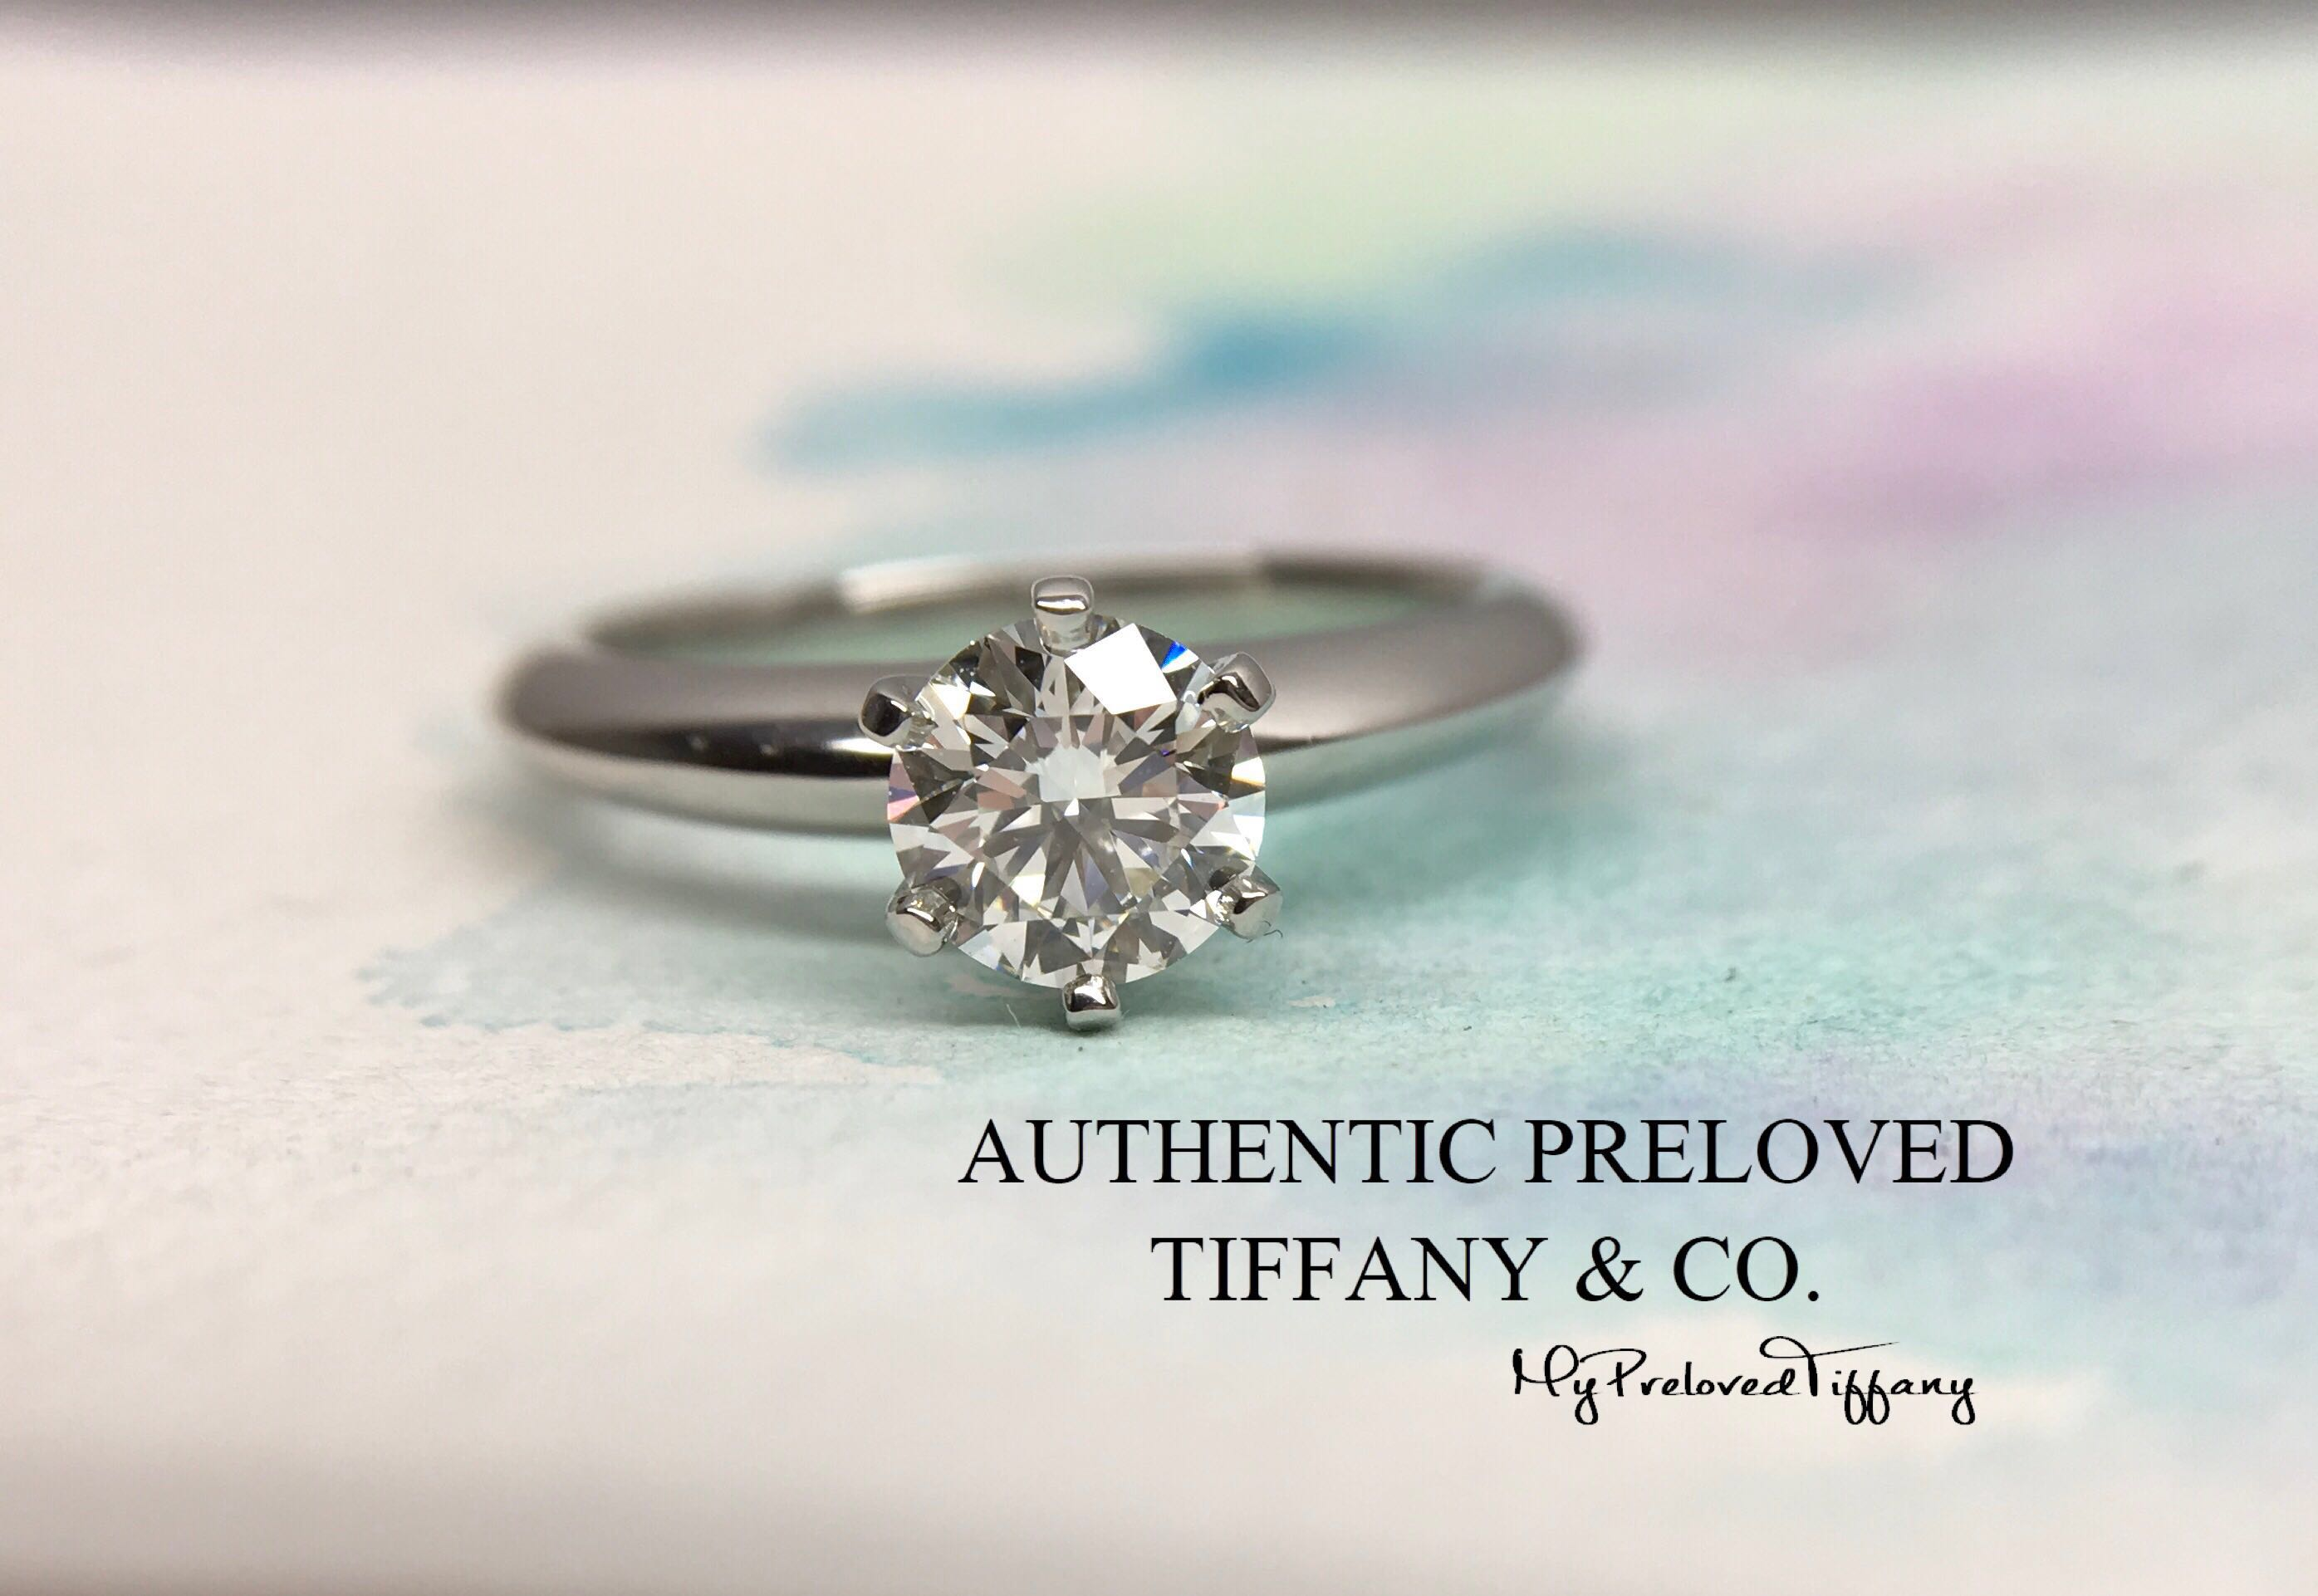 5a6221a3e Mint Tiffany & Co 0.75ct IF 3EX Solitaire Diamond Platinum Ring PT950,  Women's Fashion, Jewellery, Rings on Carousell